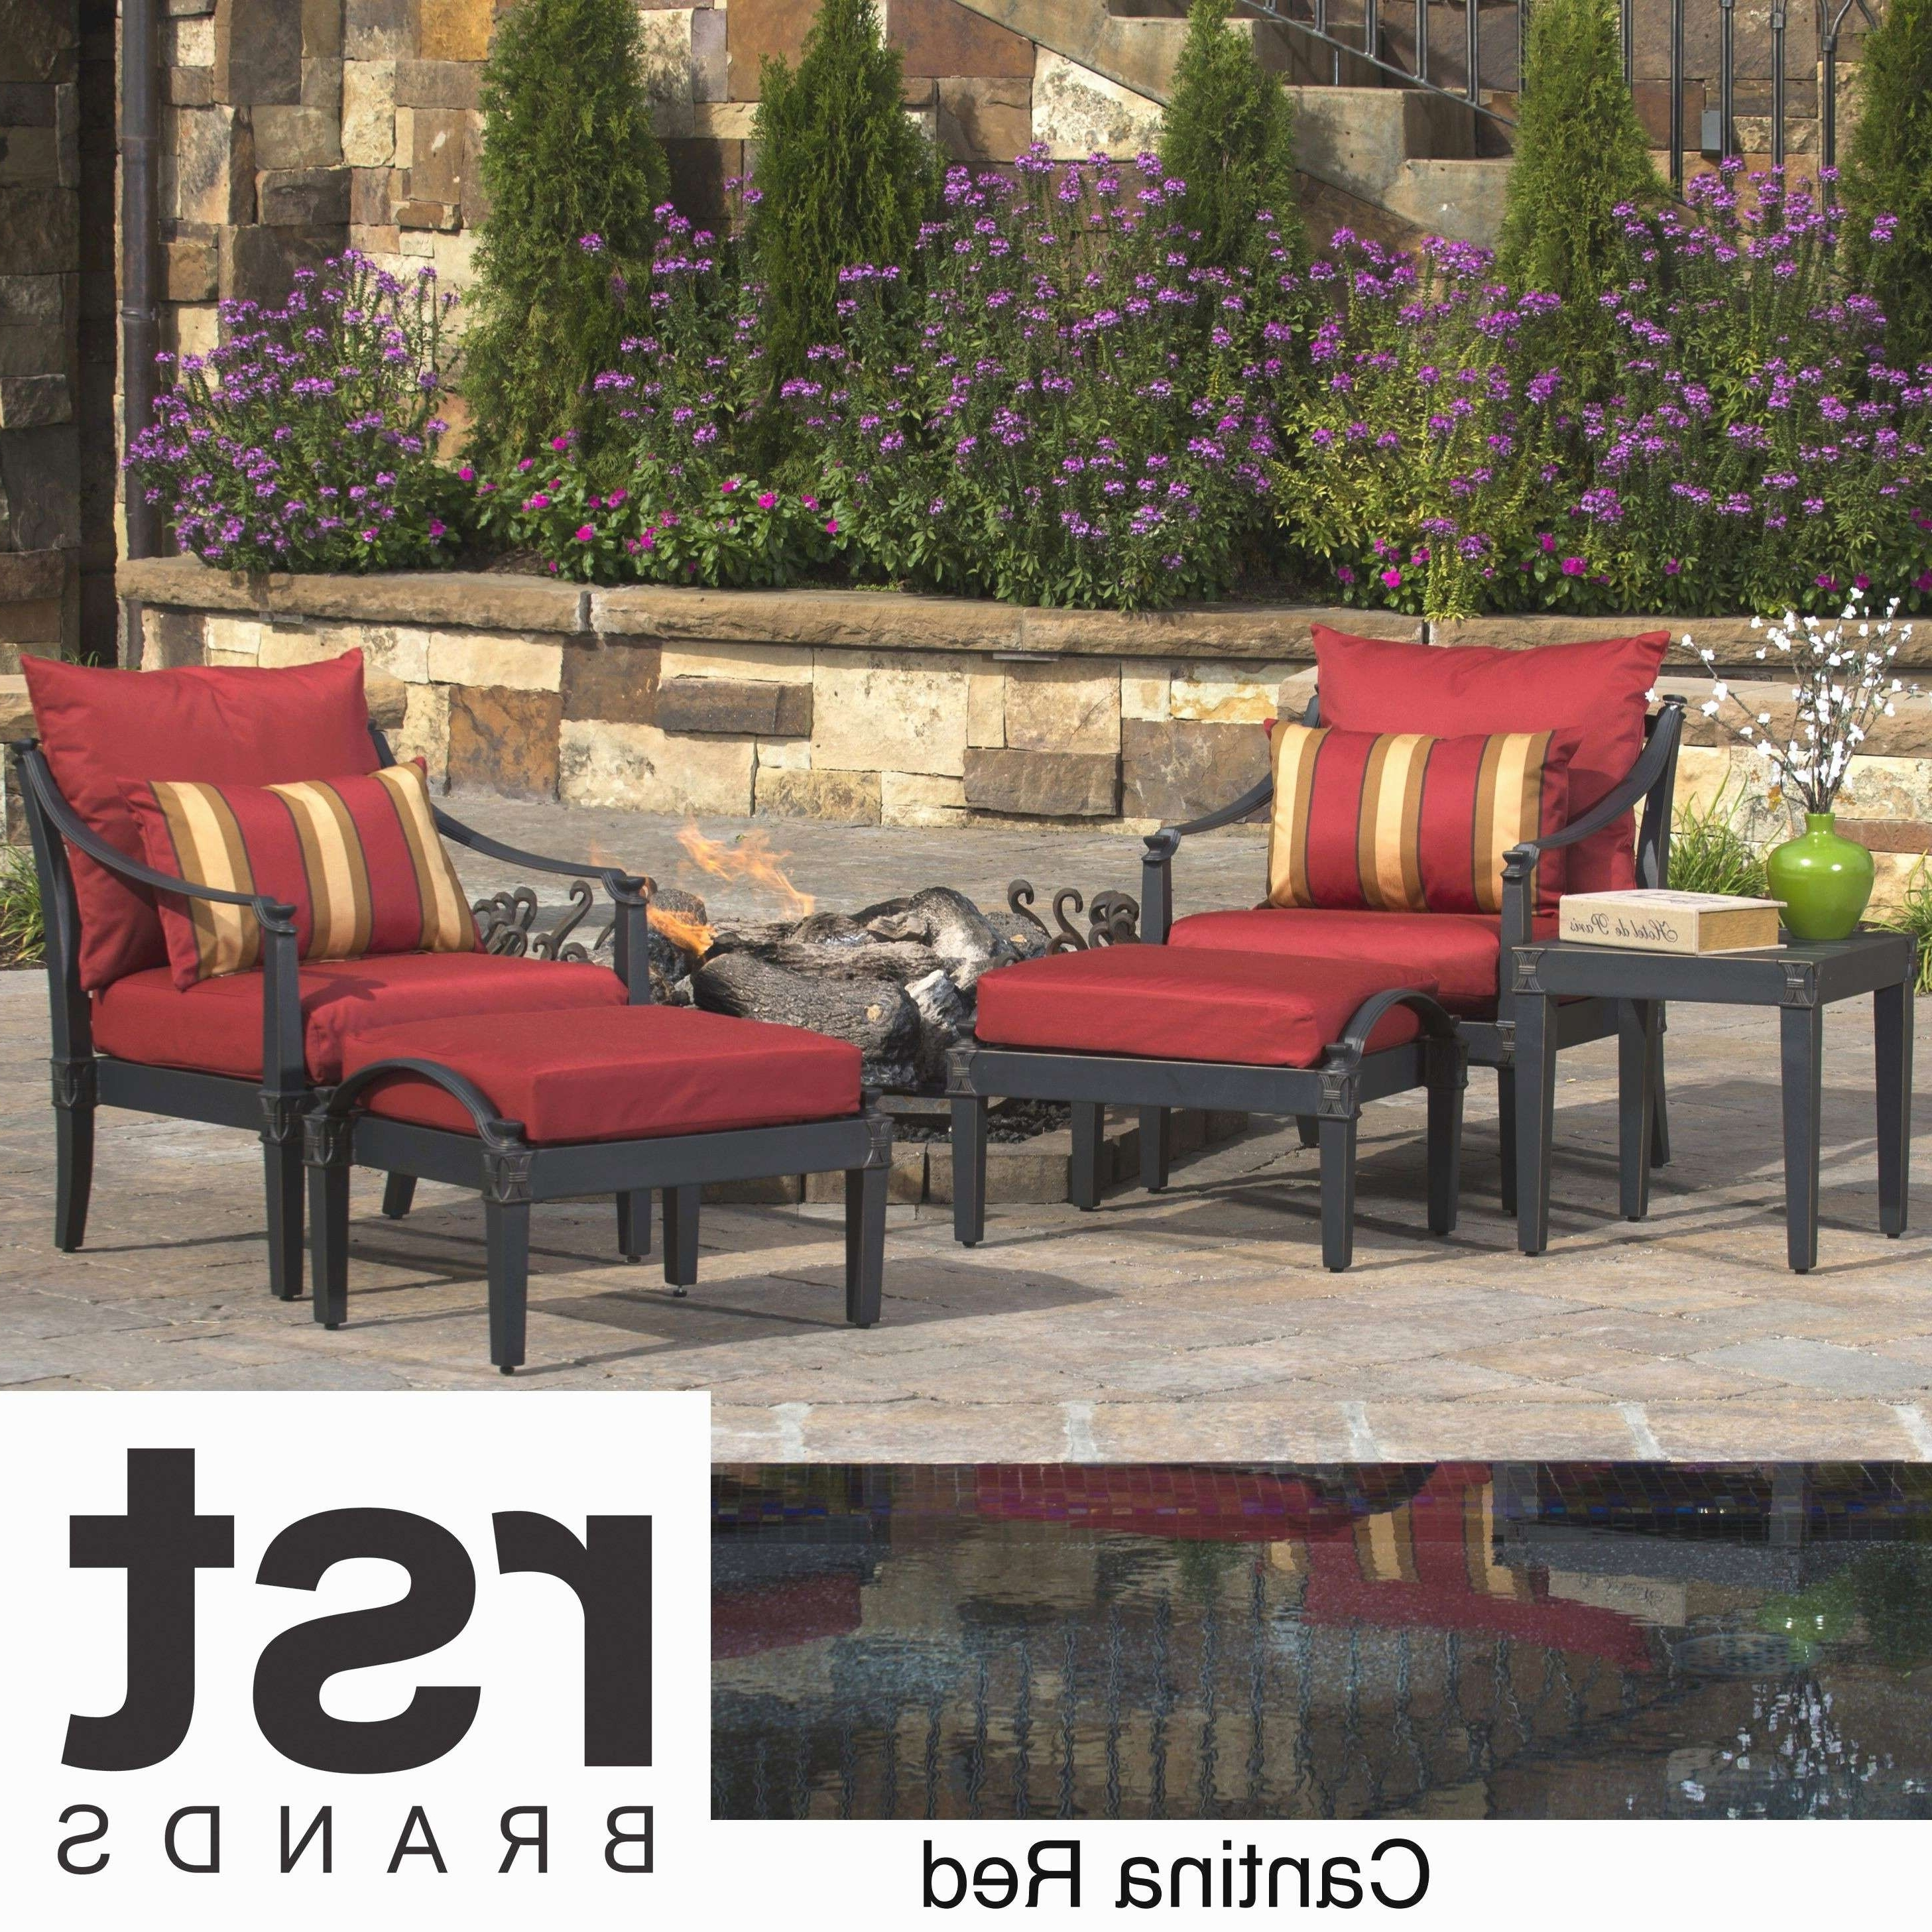 Patio Conversation Sets At Sam's Club Within Fashionable 8 Sam S Club Outdoor Patio Furniture Awesome Design Ideas Of Sam's (View 18 of 20)